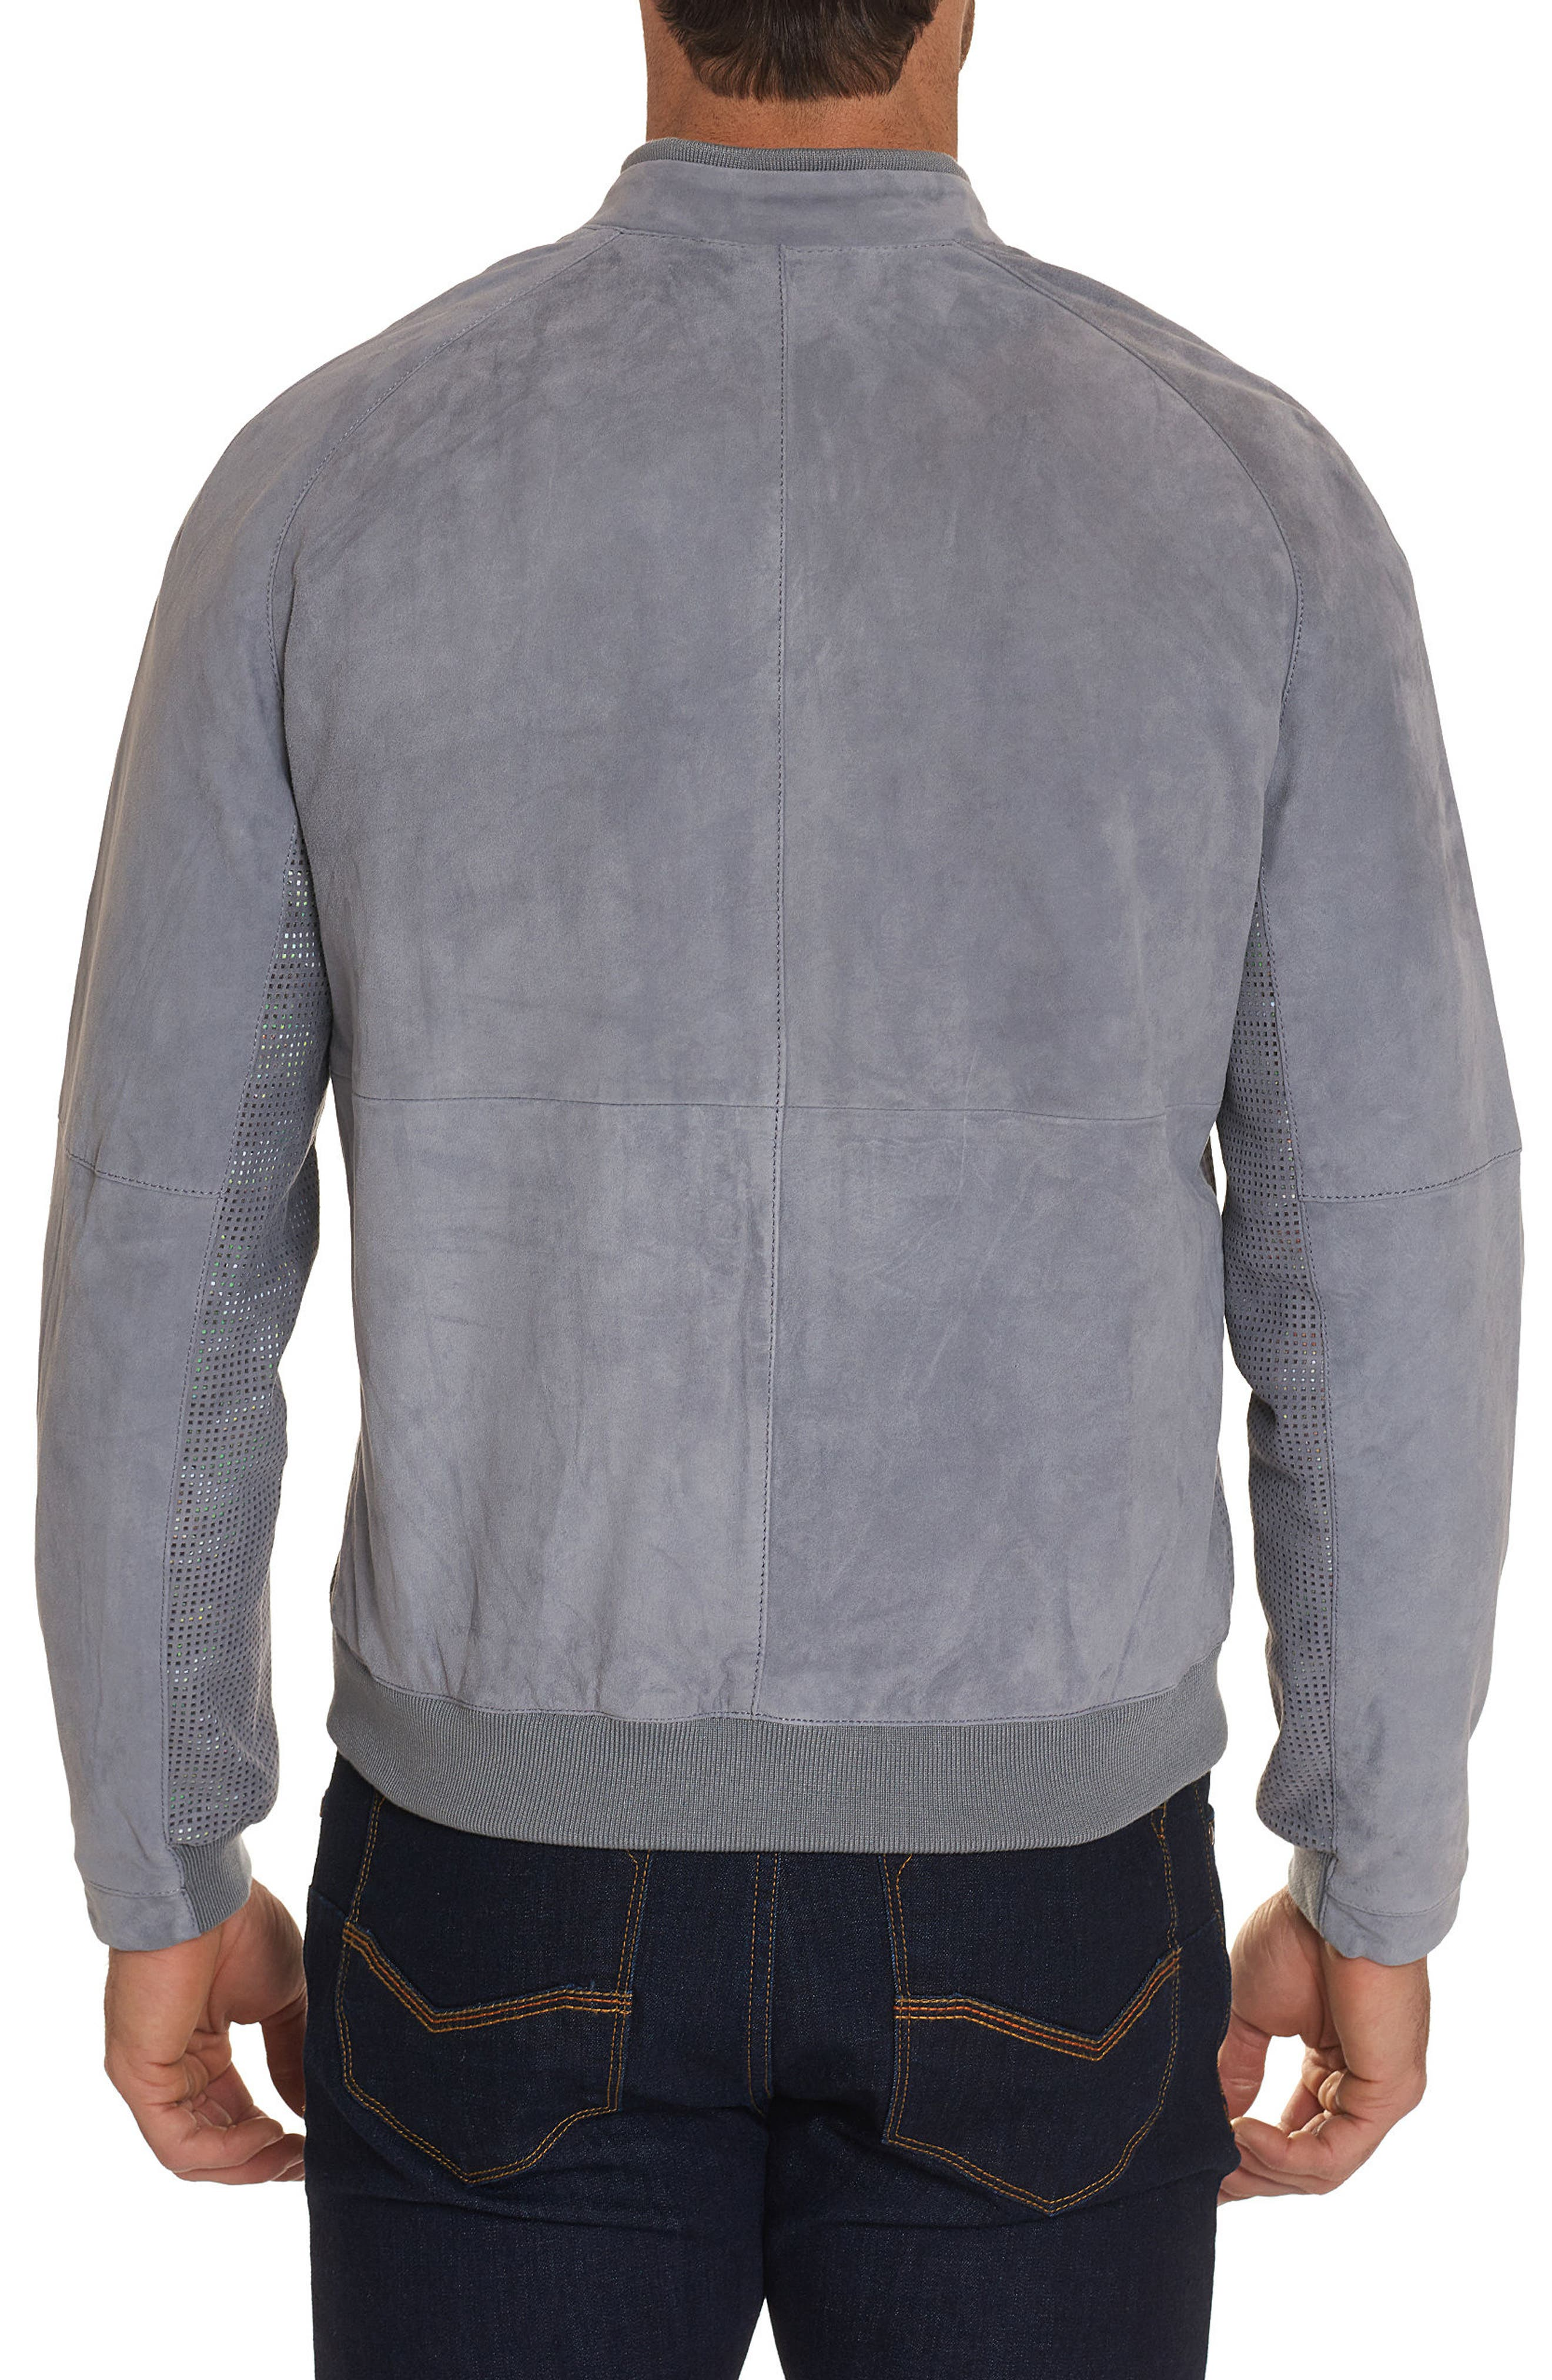 Ricardo Tailored Fit Suede Bomber Jacket,                             Alternate thumbnail 2, color,                             GREY